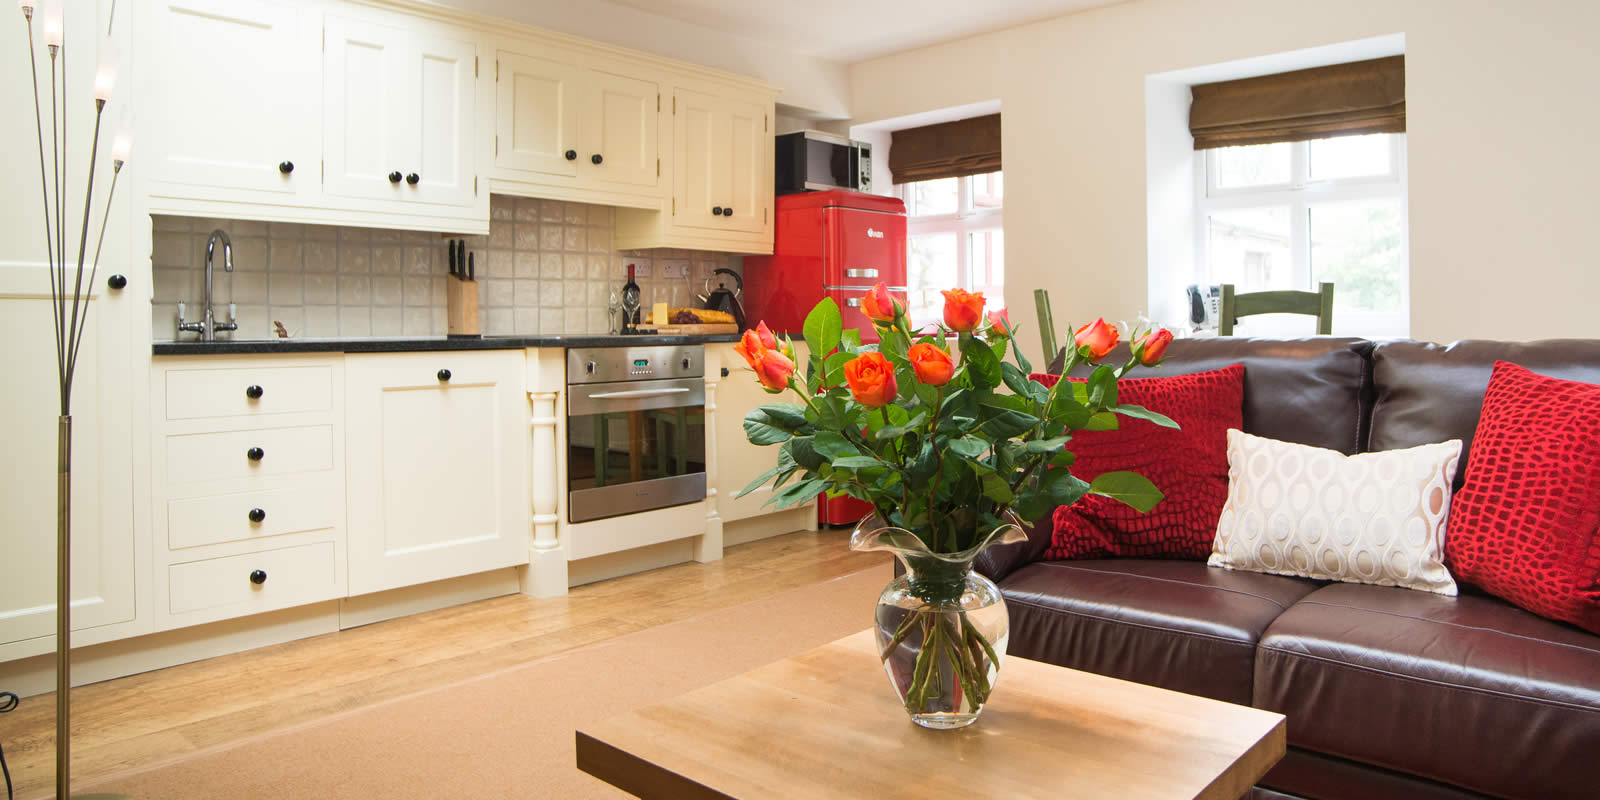 Luxury holiday cottages lancashire self catering for Premium holiday cottages